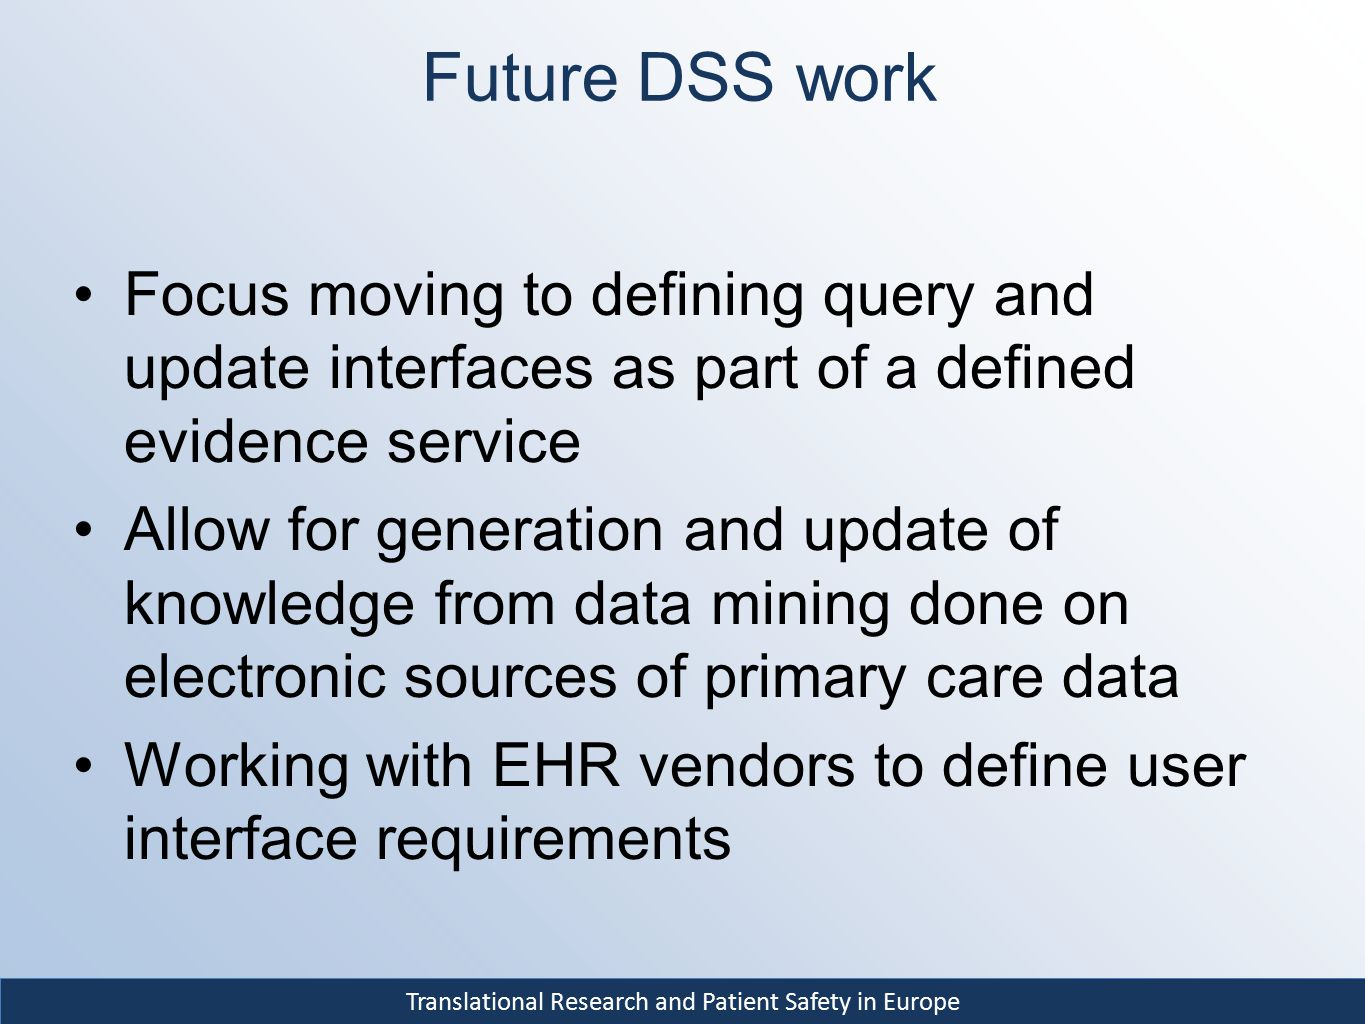 Translational Research and Patient Safety in Europe Future DSS work Focus moving to defining query and update interfaces as part of a defined evidence service Allow for generation and update of knowledge from data mining done on electronic sources of primary care data Working with EHR vendors to define user interface requirements